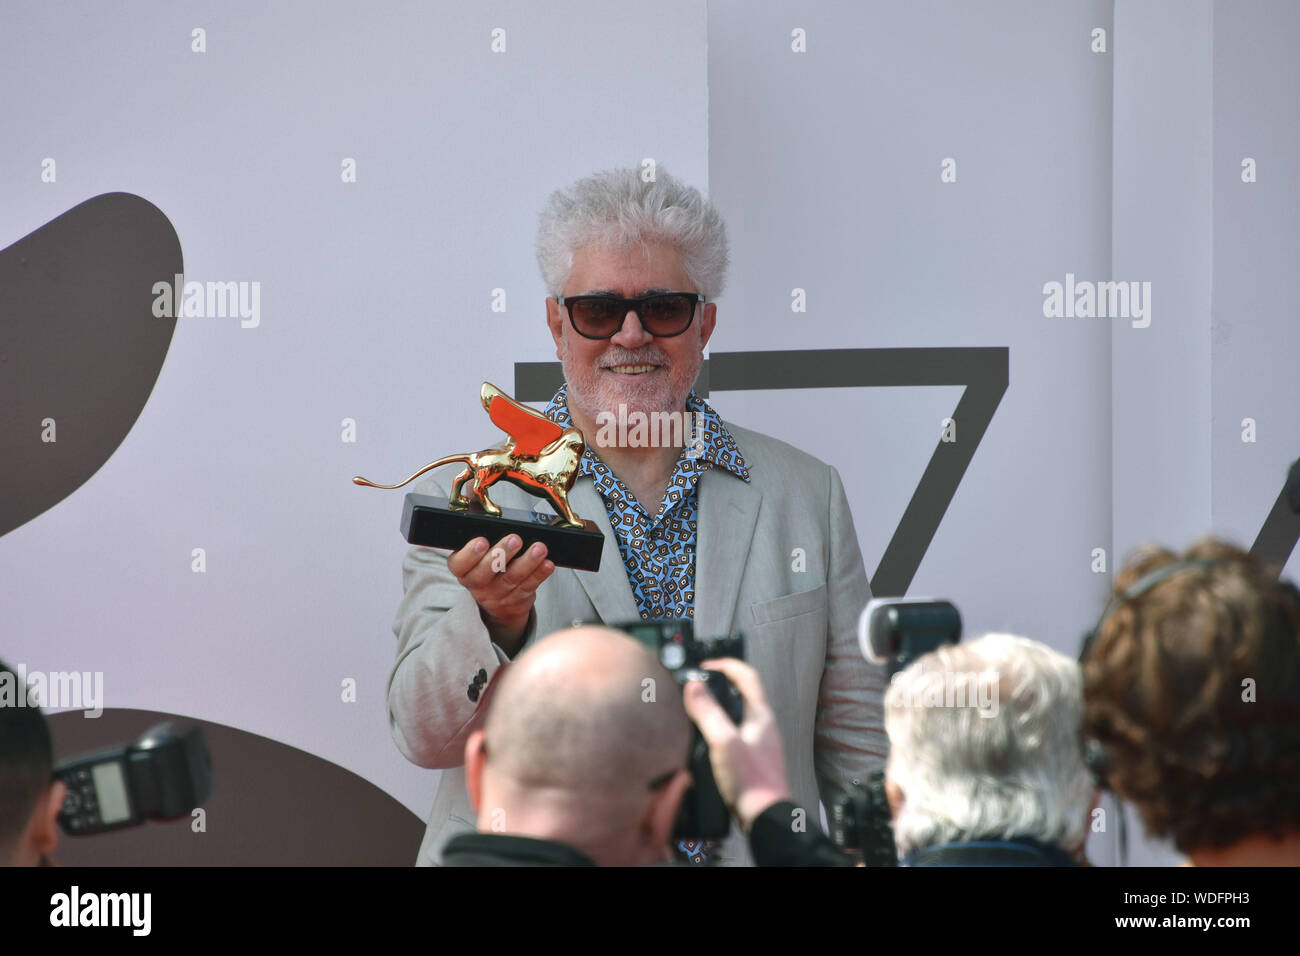 VENICE, Italy. 29th Aug, 2019. Pedro Almodovar shows the Golden Lion at Palazzo del Cinema after receiving it for lifetime achievements during the 76th Venice Film Festival on August 29, 2019 in Venice, Italy. Credit: Andrea Merola/Awakening/Alamy Live News Stock Photo